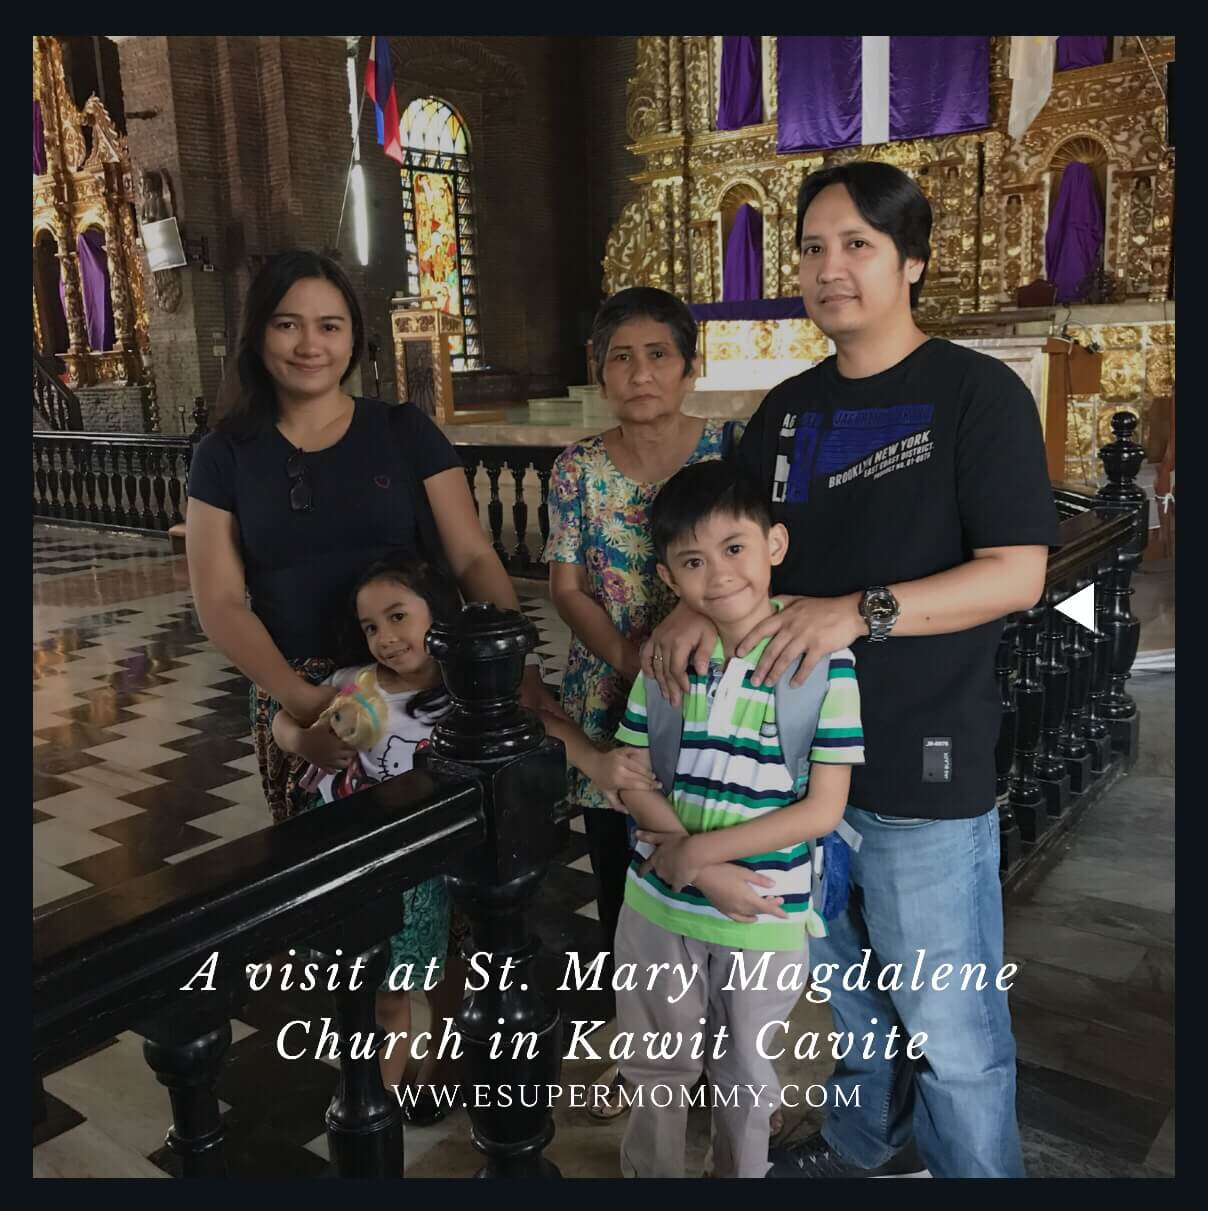 St. Mary Magdalene Parish Church Cavite